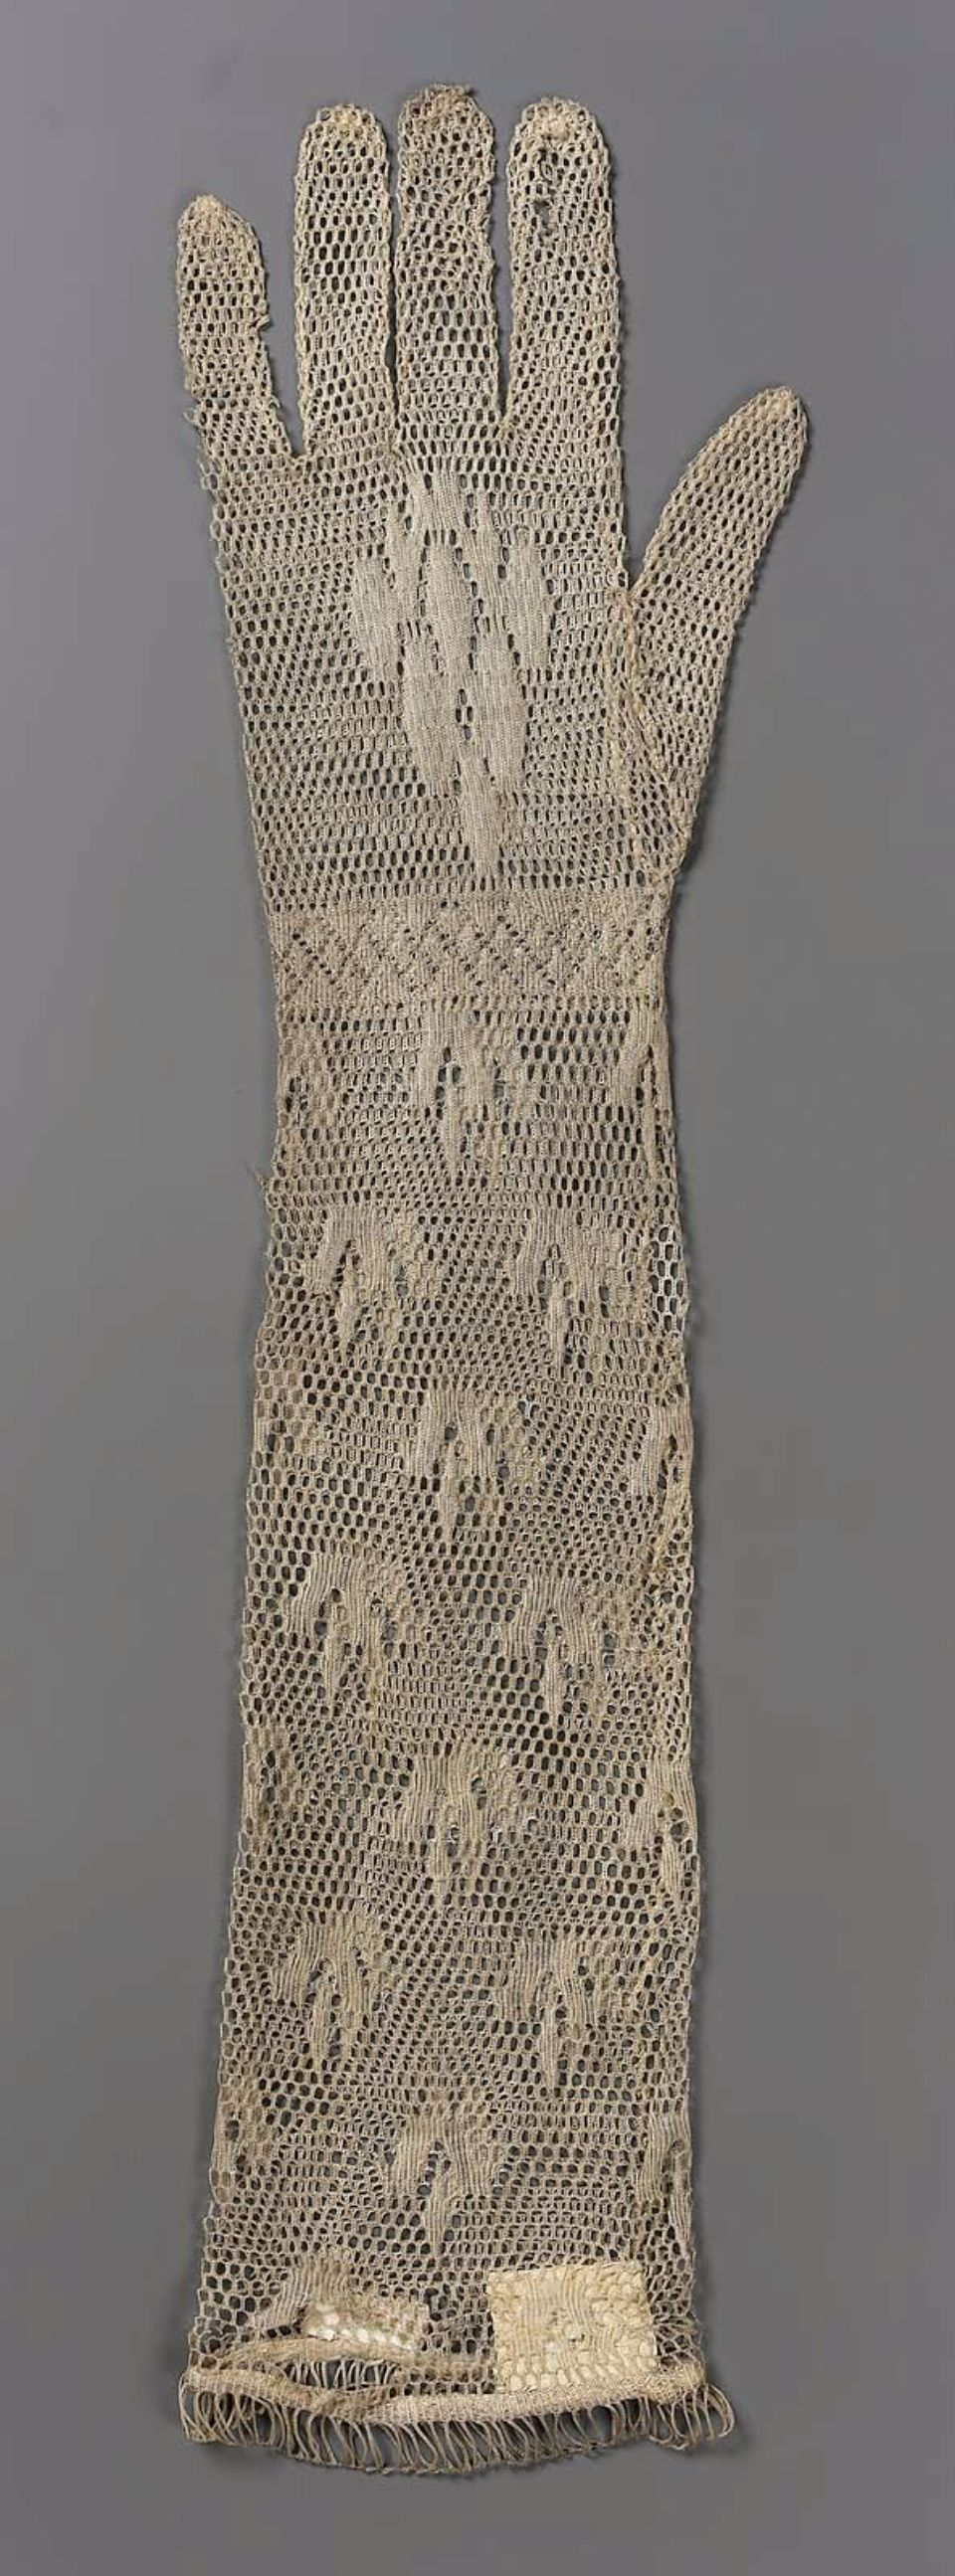 Womenus gloves machinemade knitted lace late th or early th